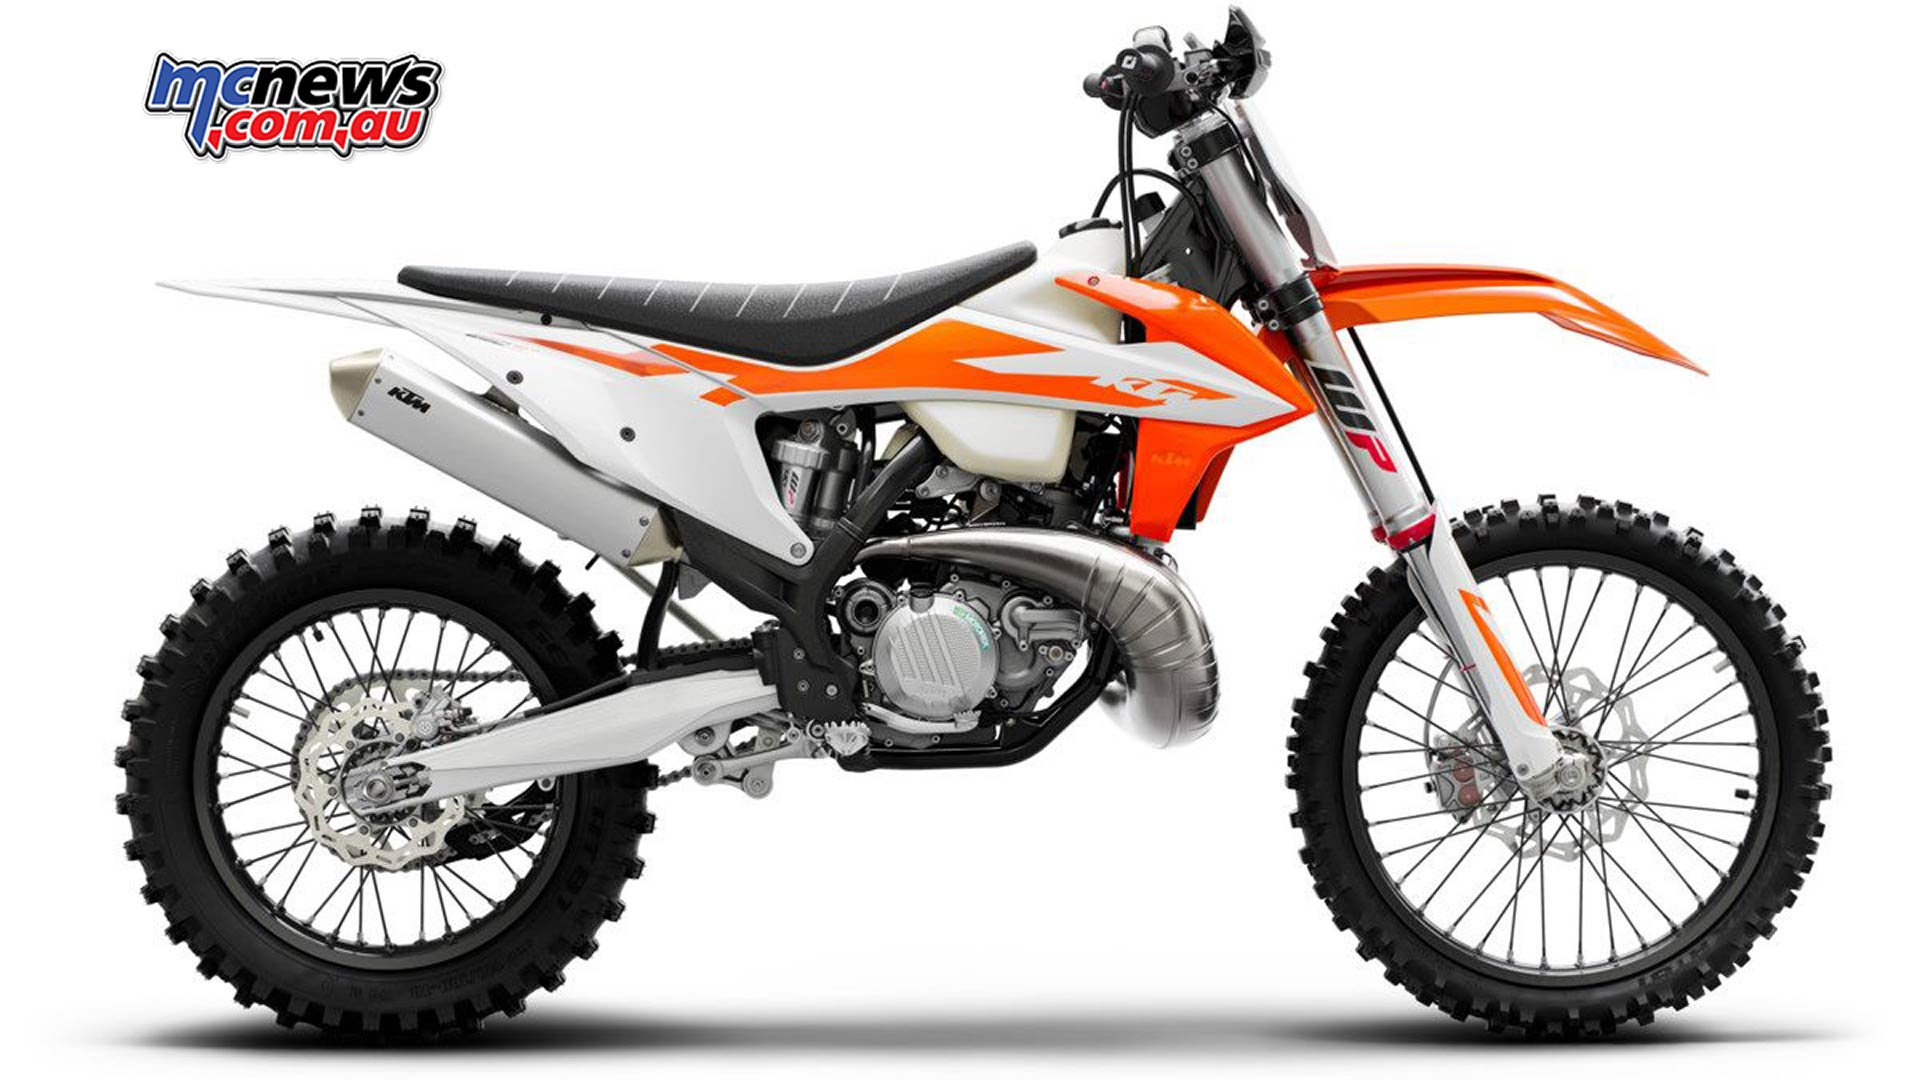 2020 Ktm Motocross Range Full Specifications Motorcycle News Sport And Reviews